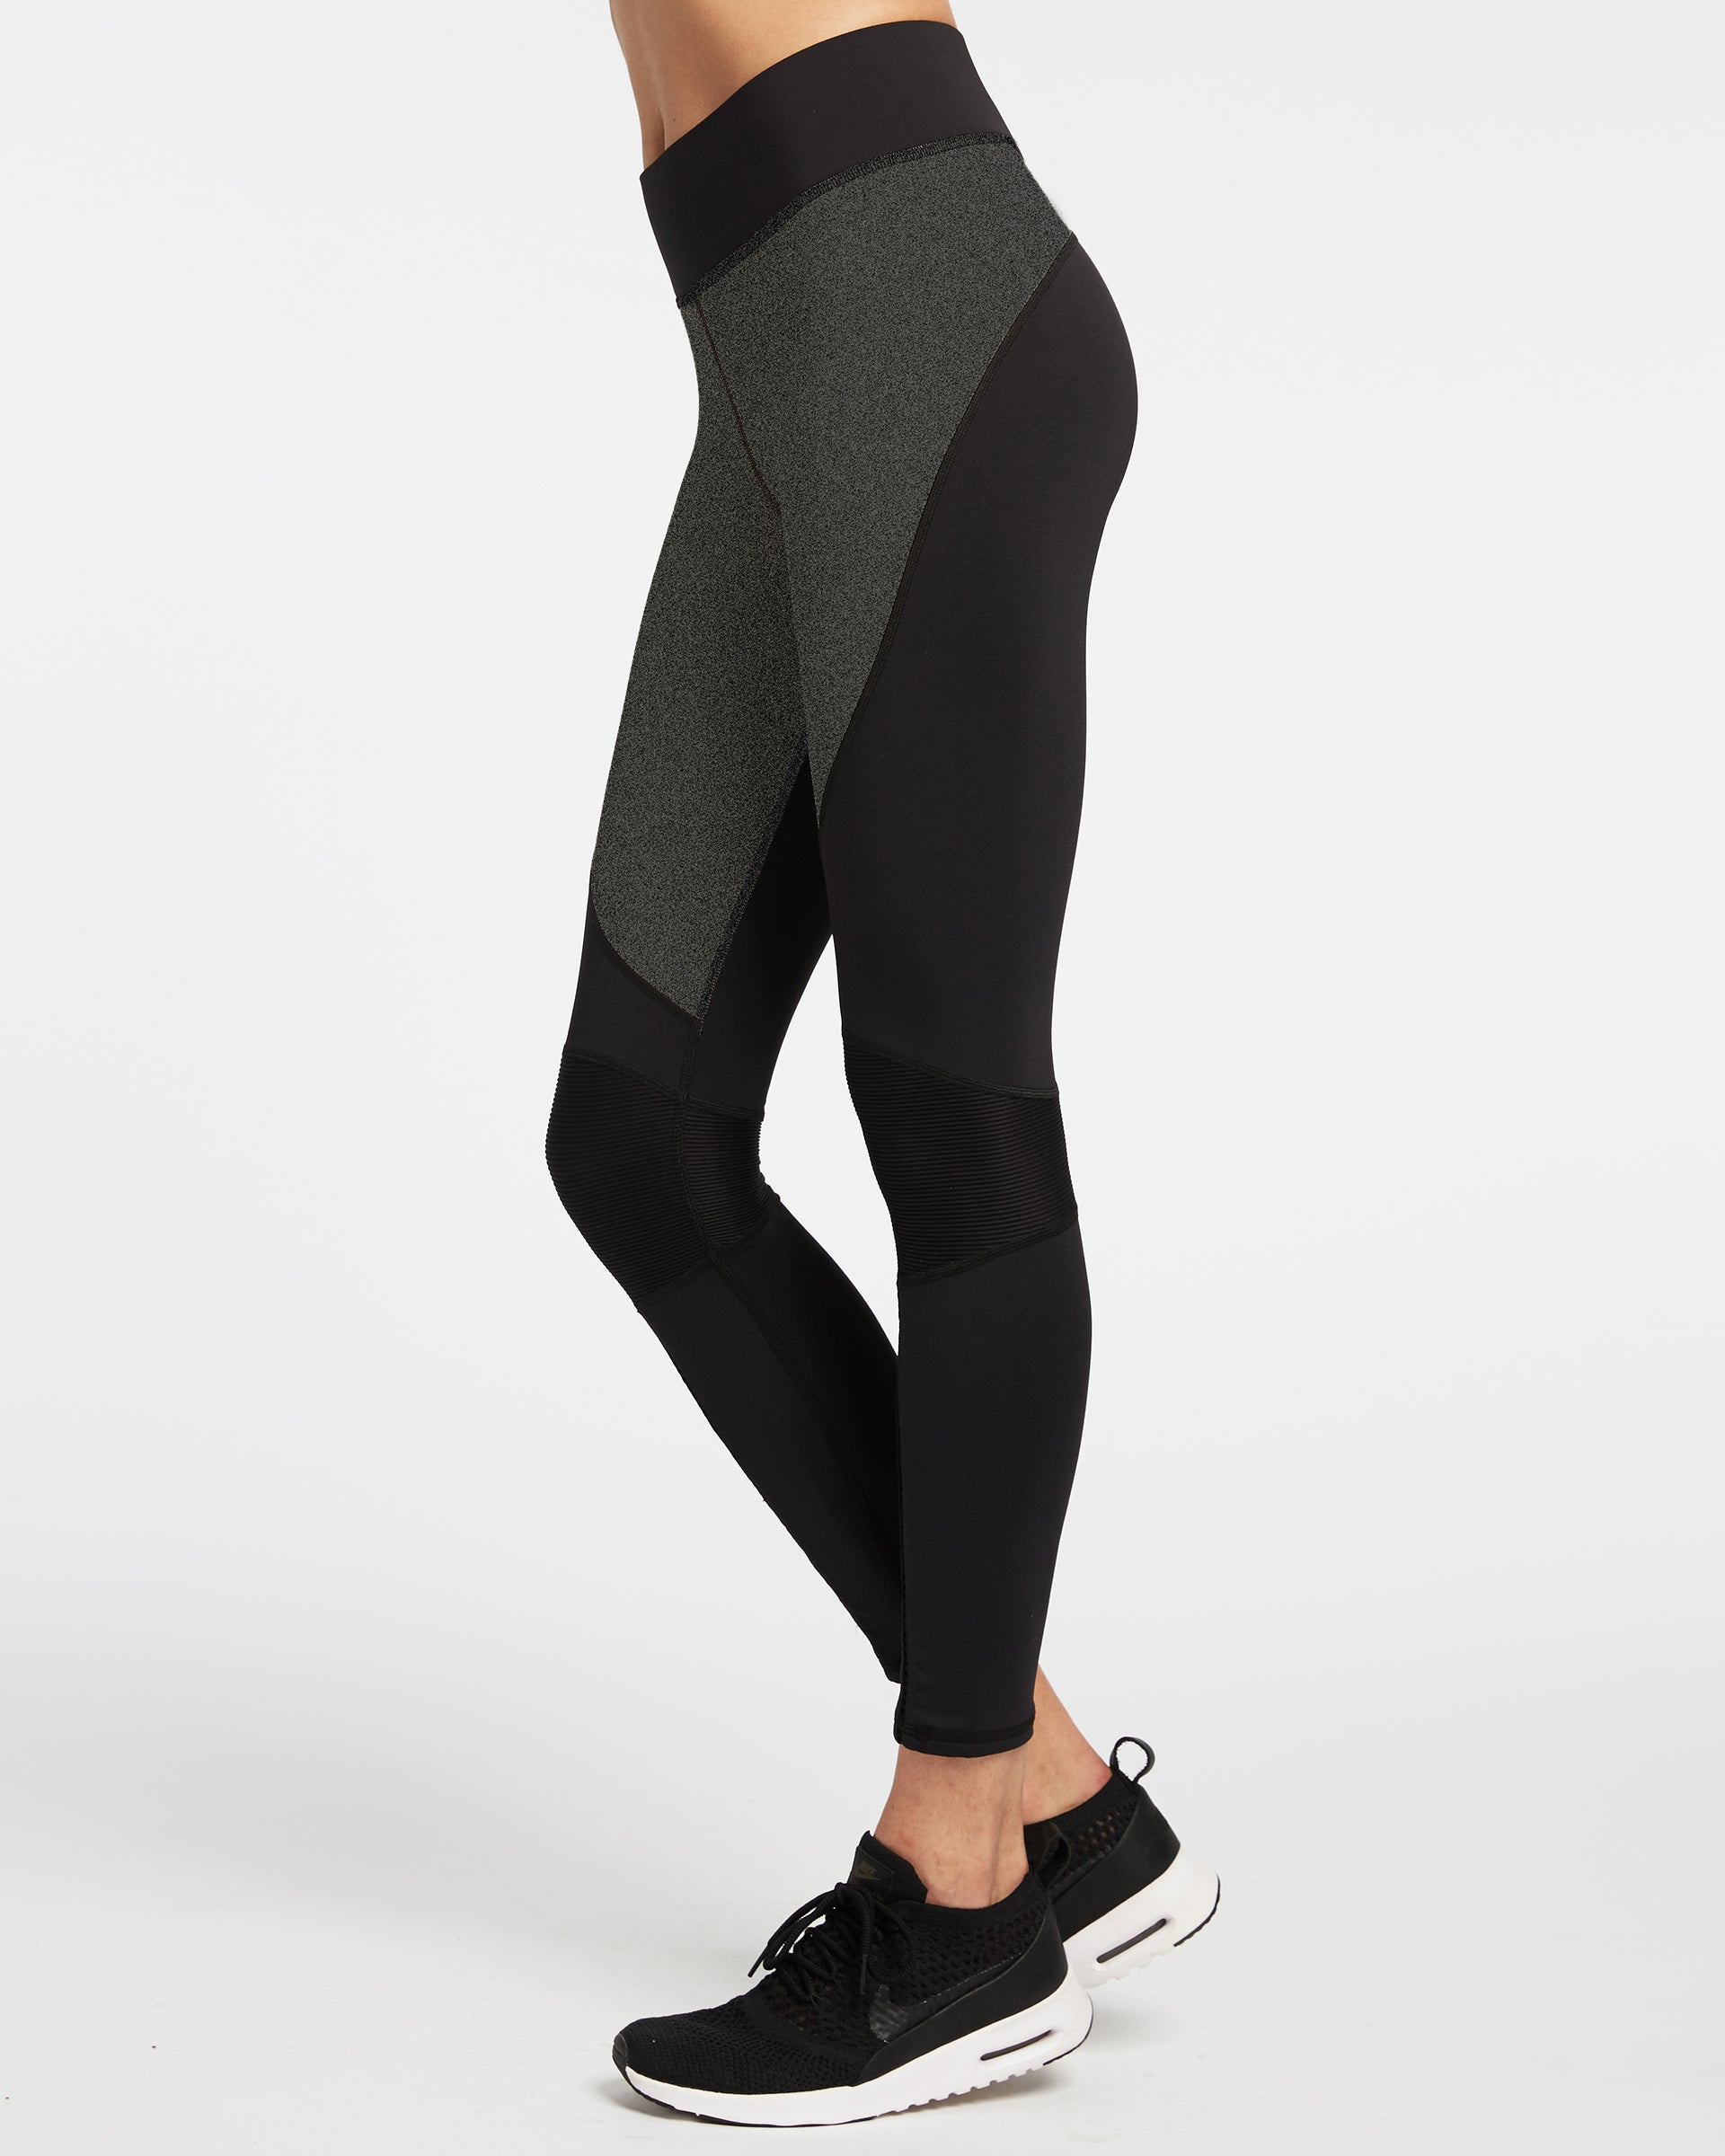 shift-legging-heather-grey